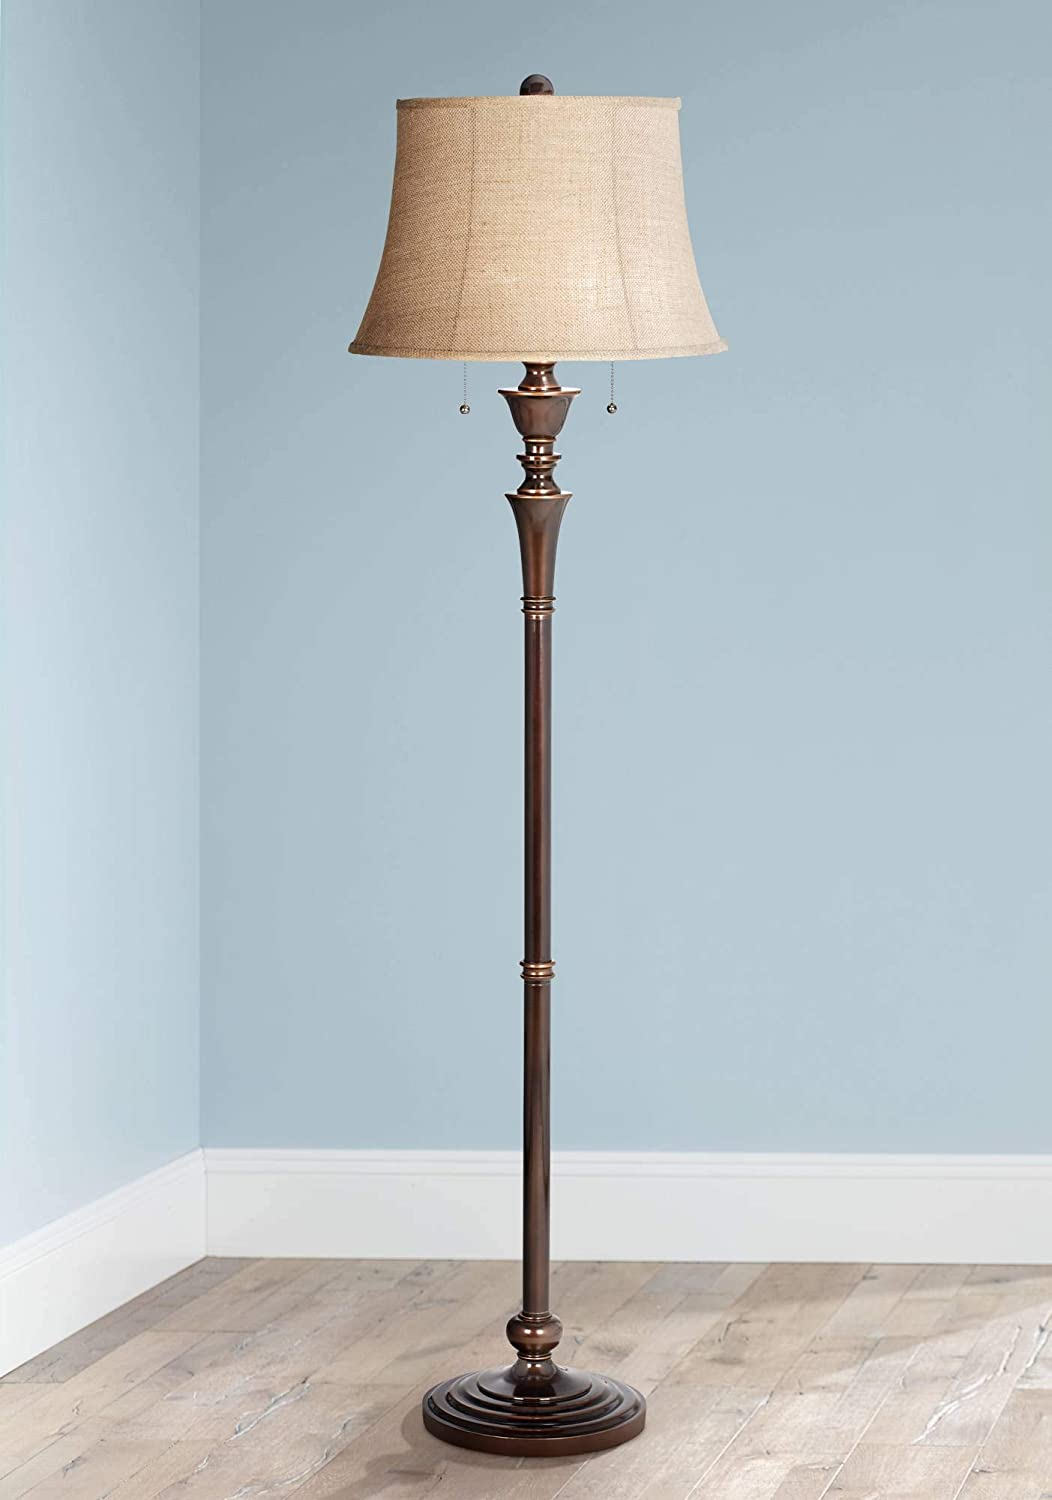 Brooke Traditional Floor Lamp Rich Bronze with Copper Accents Burlap Bell Shade for Living Room Reading Bedroom Office – Regency Hill